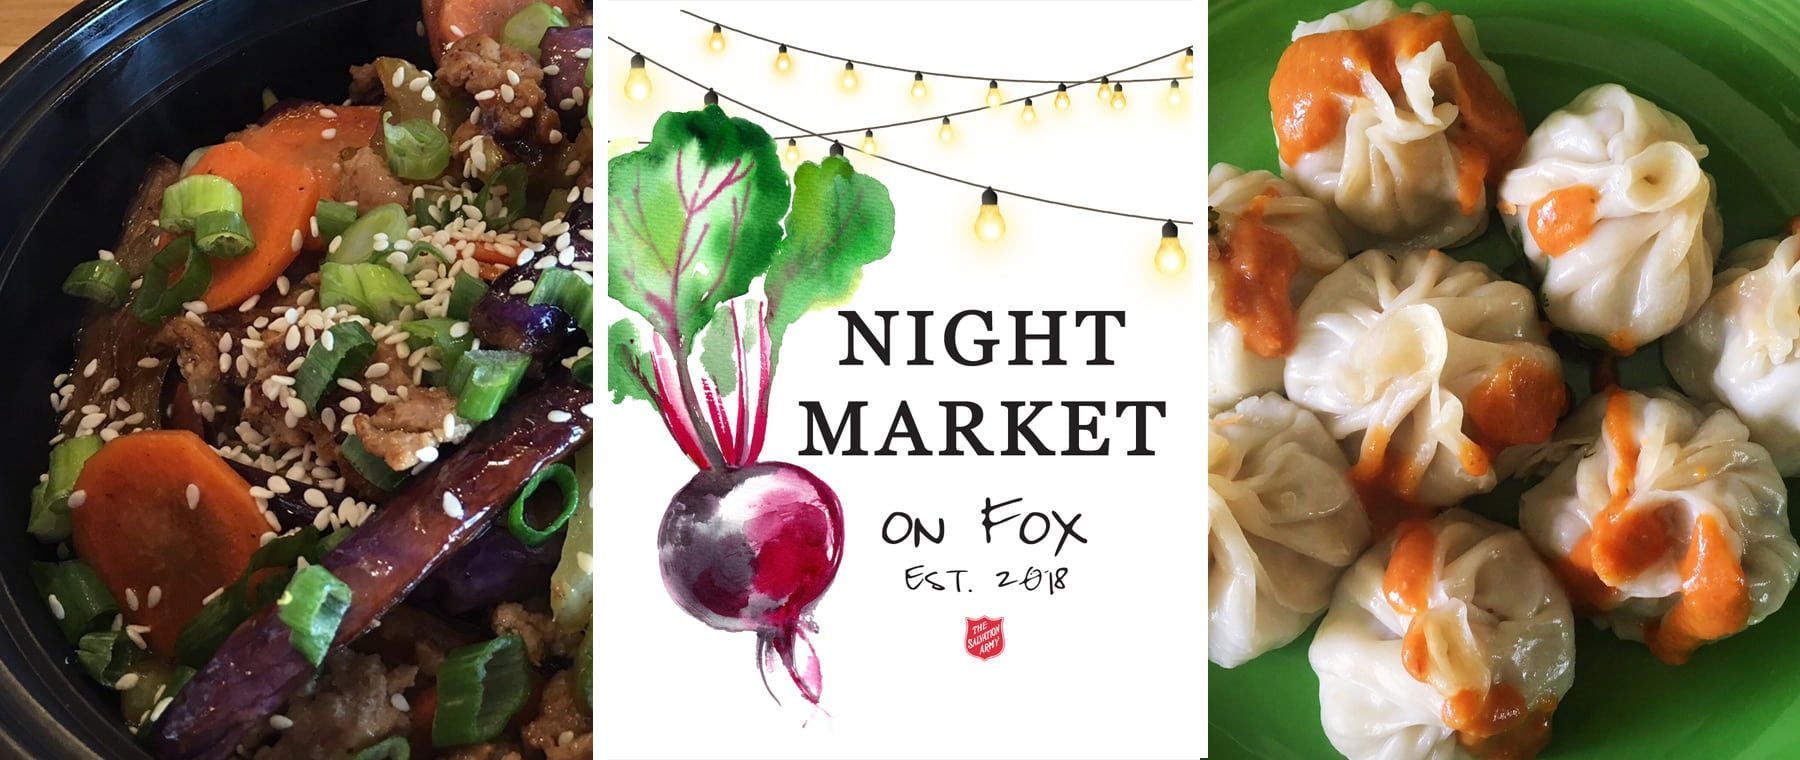 End of summer night market pairs 20+ food vendors + music Aug 31